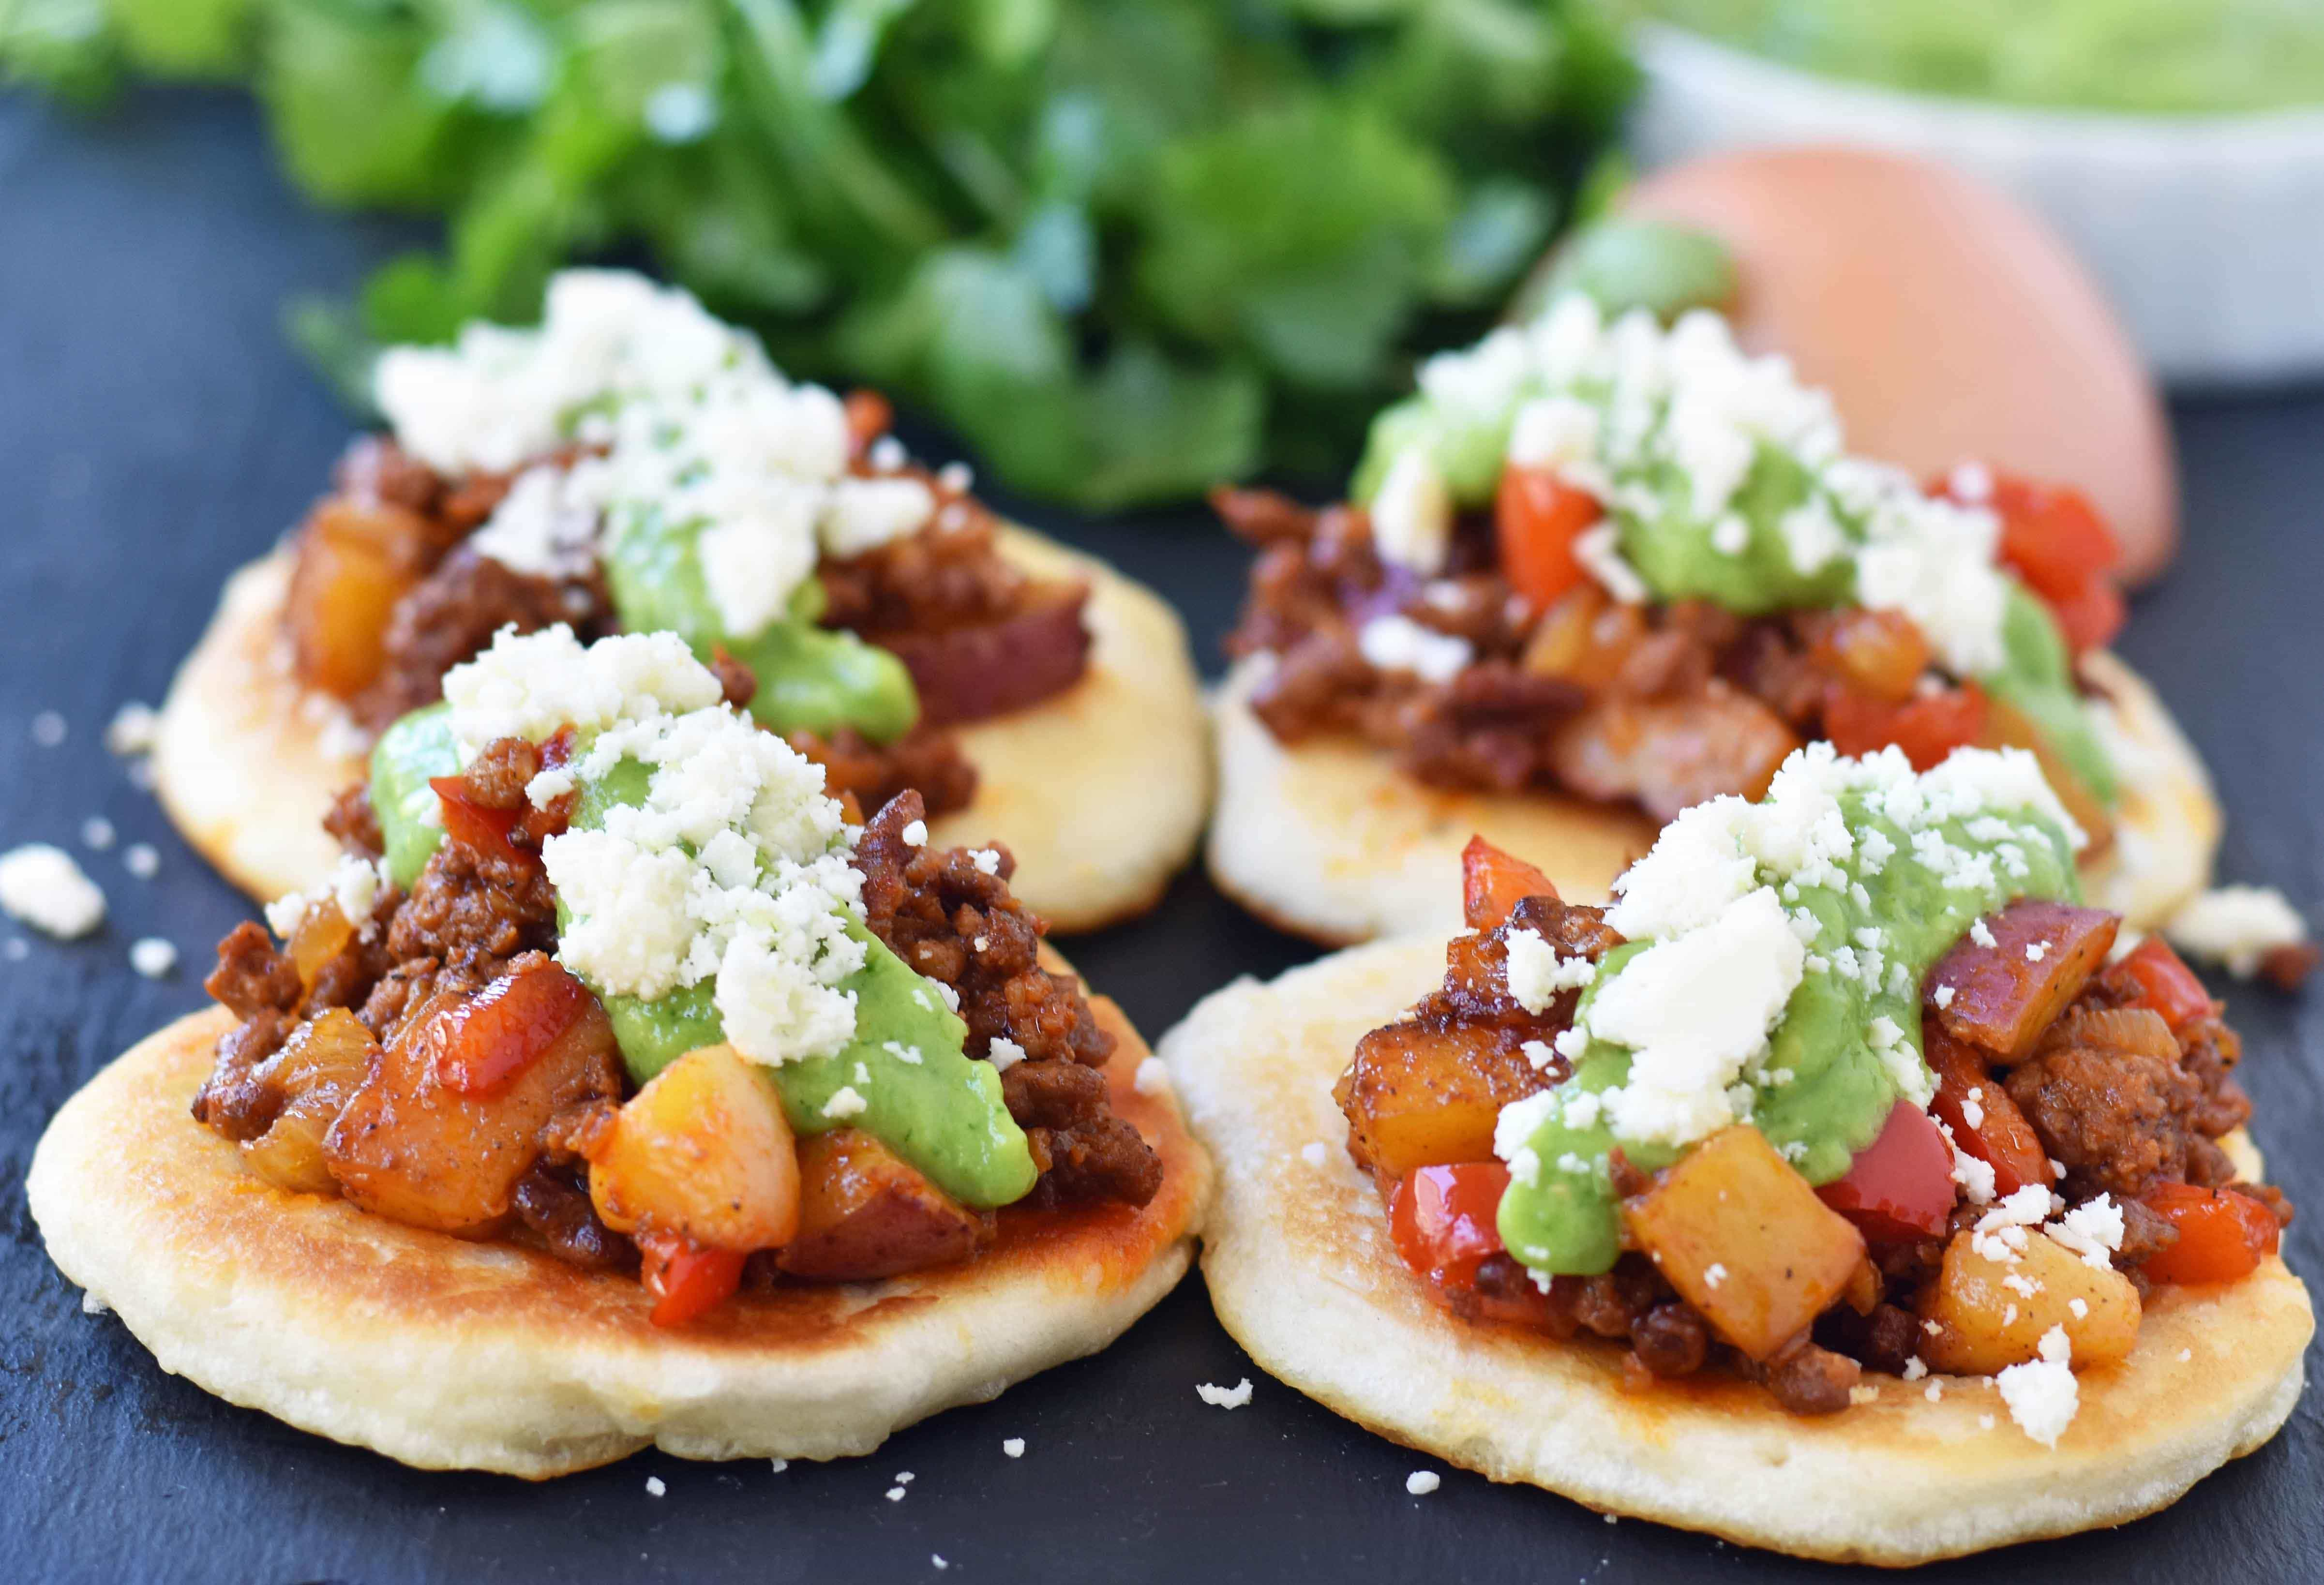 Chorizo Potato Puffy Tacos from Melissa Stadler 46th Pillsbury Bake-Off Contest. Puffy Tacos made with Pillsbury biscuit dough and filled with spicy chorizo, seasoned potatoes and peppers, a creamy avocado tomatillo crema, and cotija cheese. www.modernhoney.com